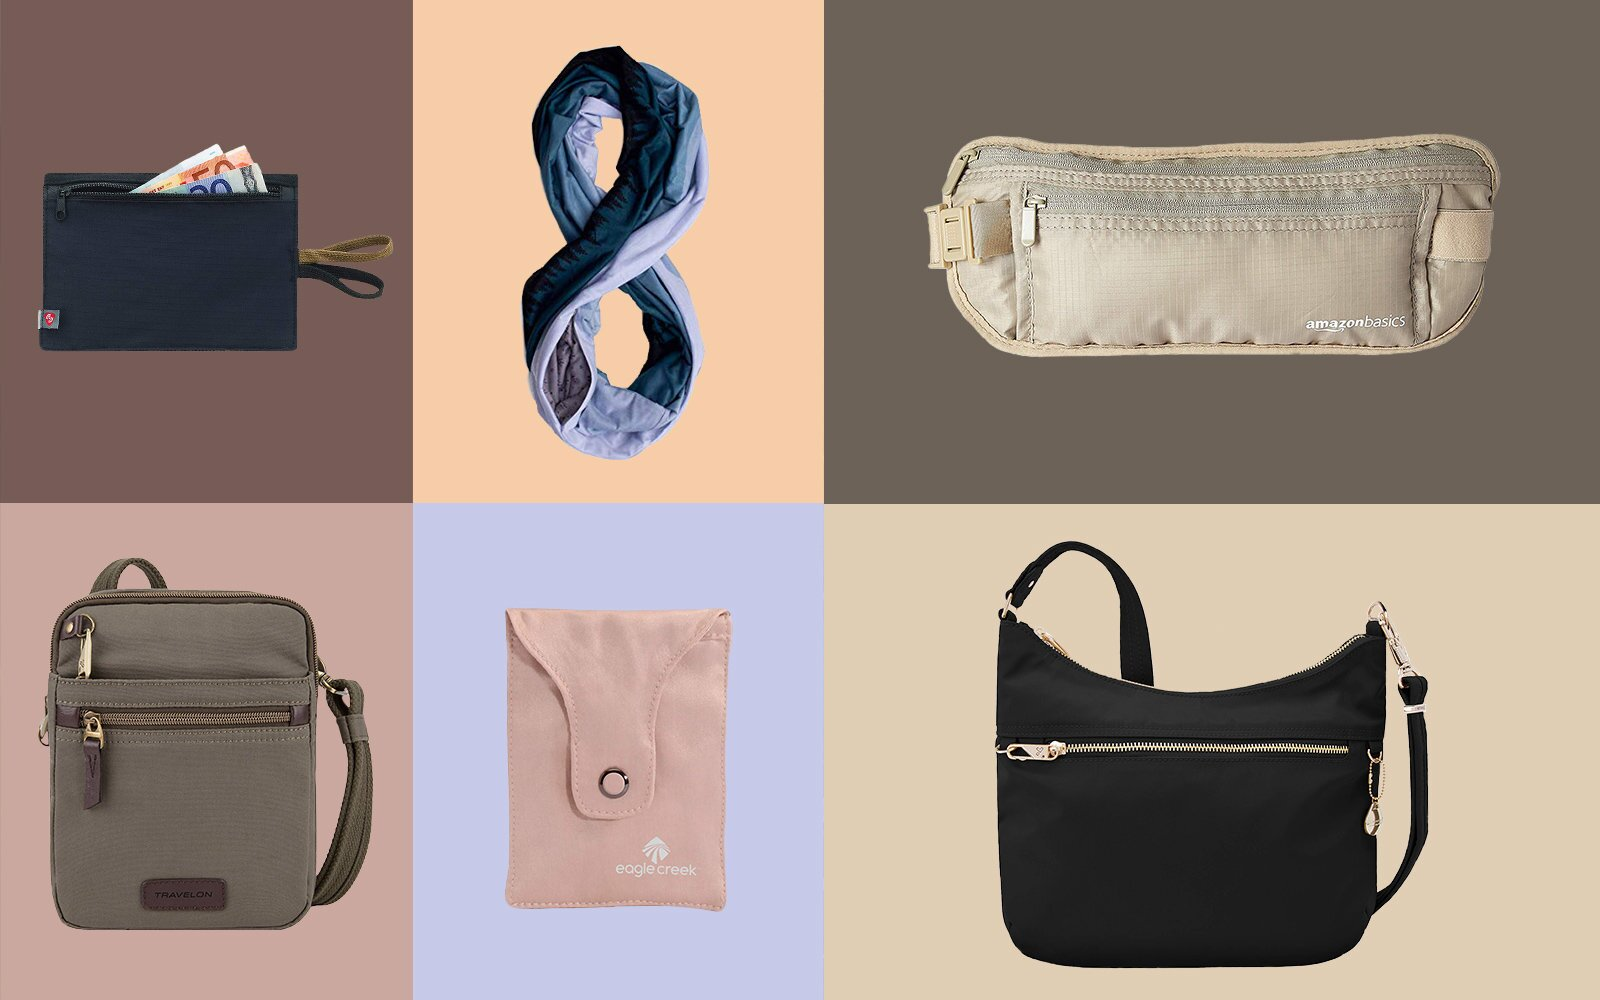 cc96b11020d8 The Best Money Belts for Travel in 2019 | Travel + Leisure